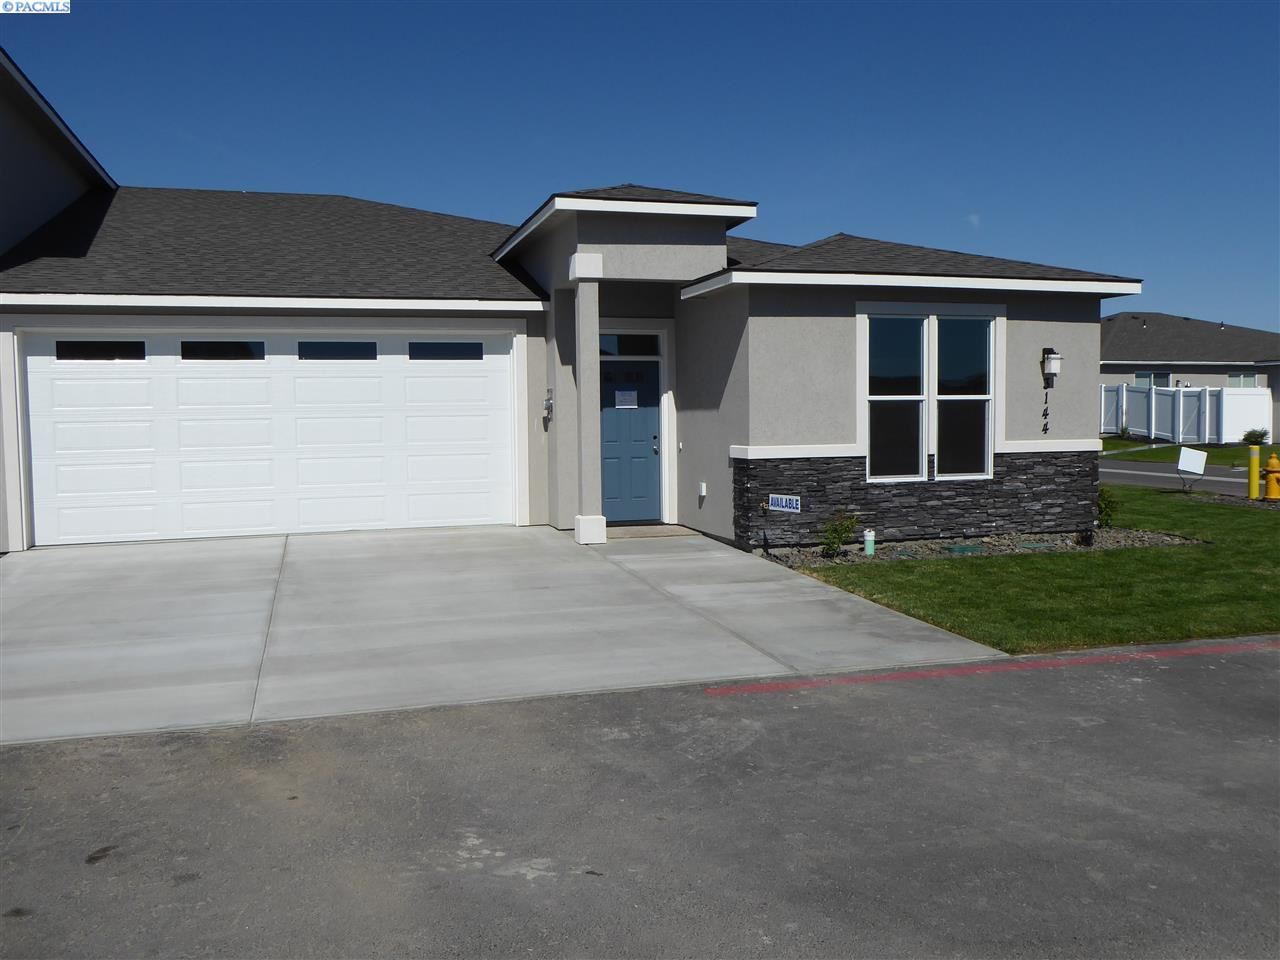 Photo of 3144 Carefree Loop, West Richland, WA 99353 (MLS # 245835)